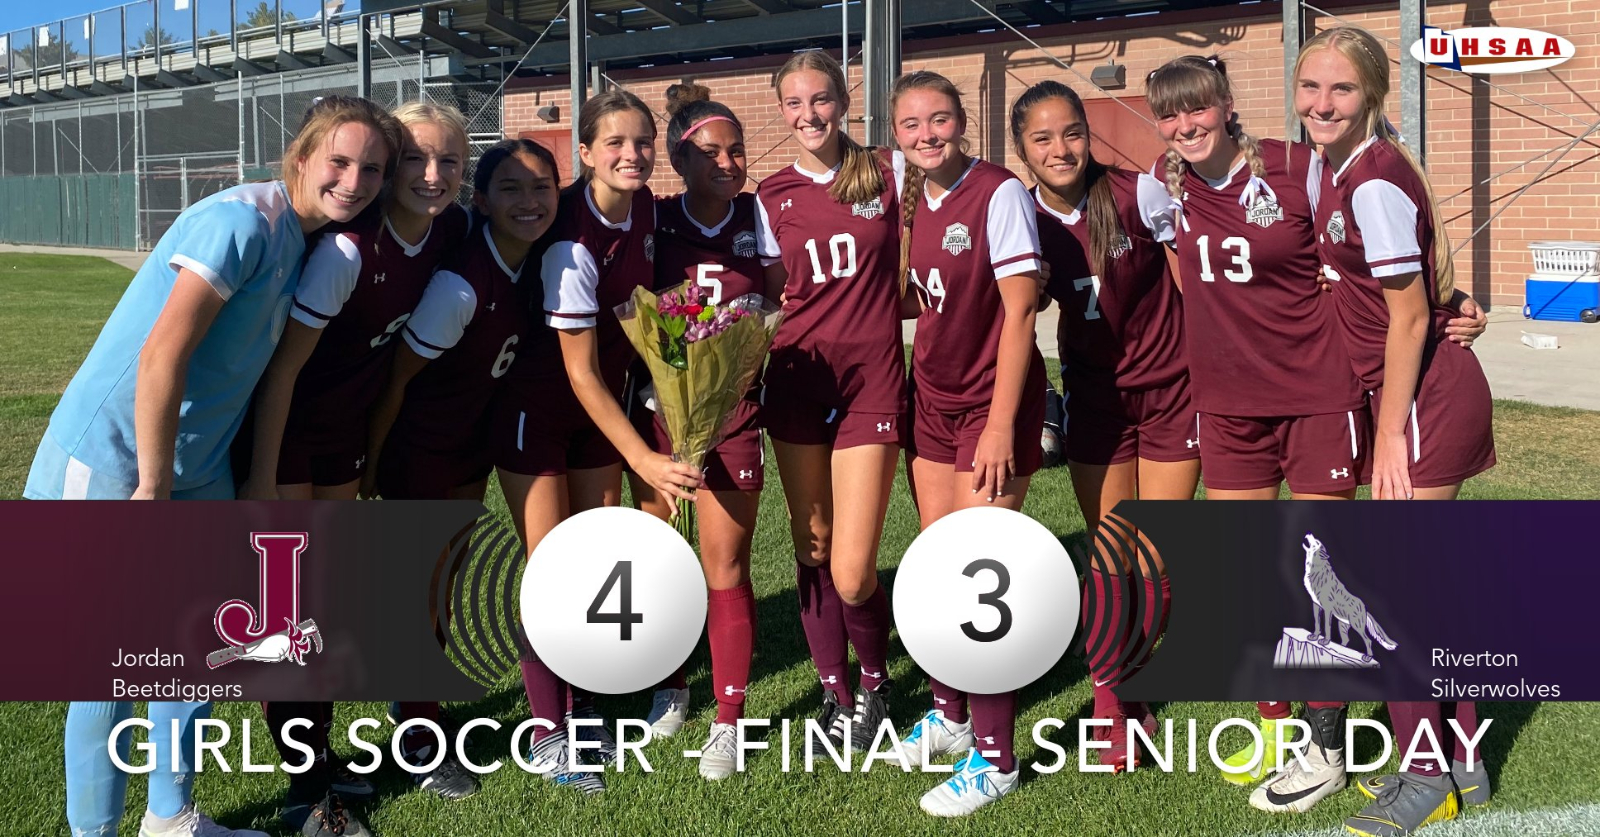 Lilly Jensen Scores 3 goals as Jordan Soccer Wins on Senior Day!